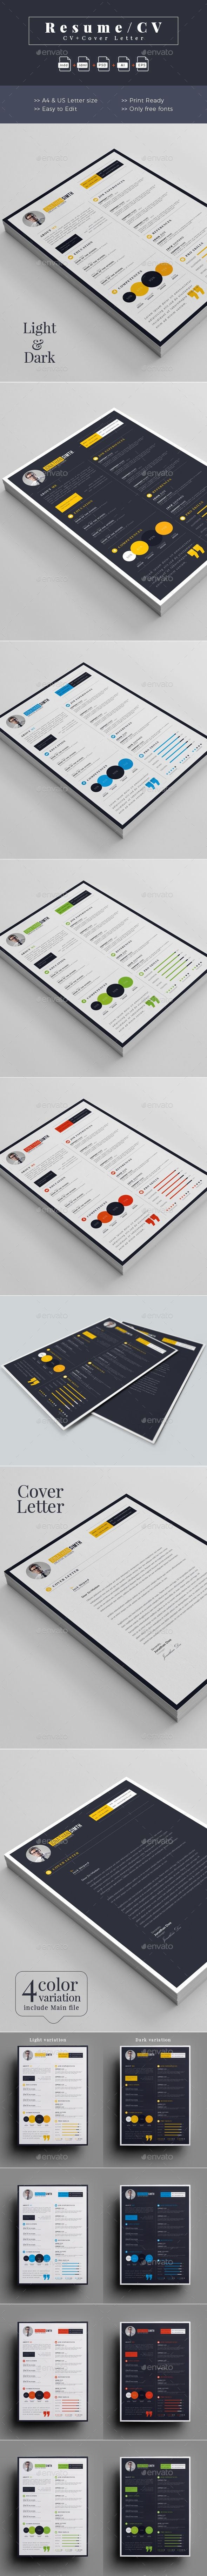 Resume / CV Template PSD, Vector EPS, InDesign INDD, AI Illustrator, MS Word